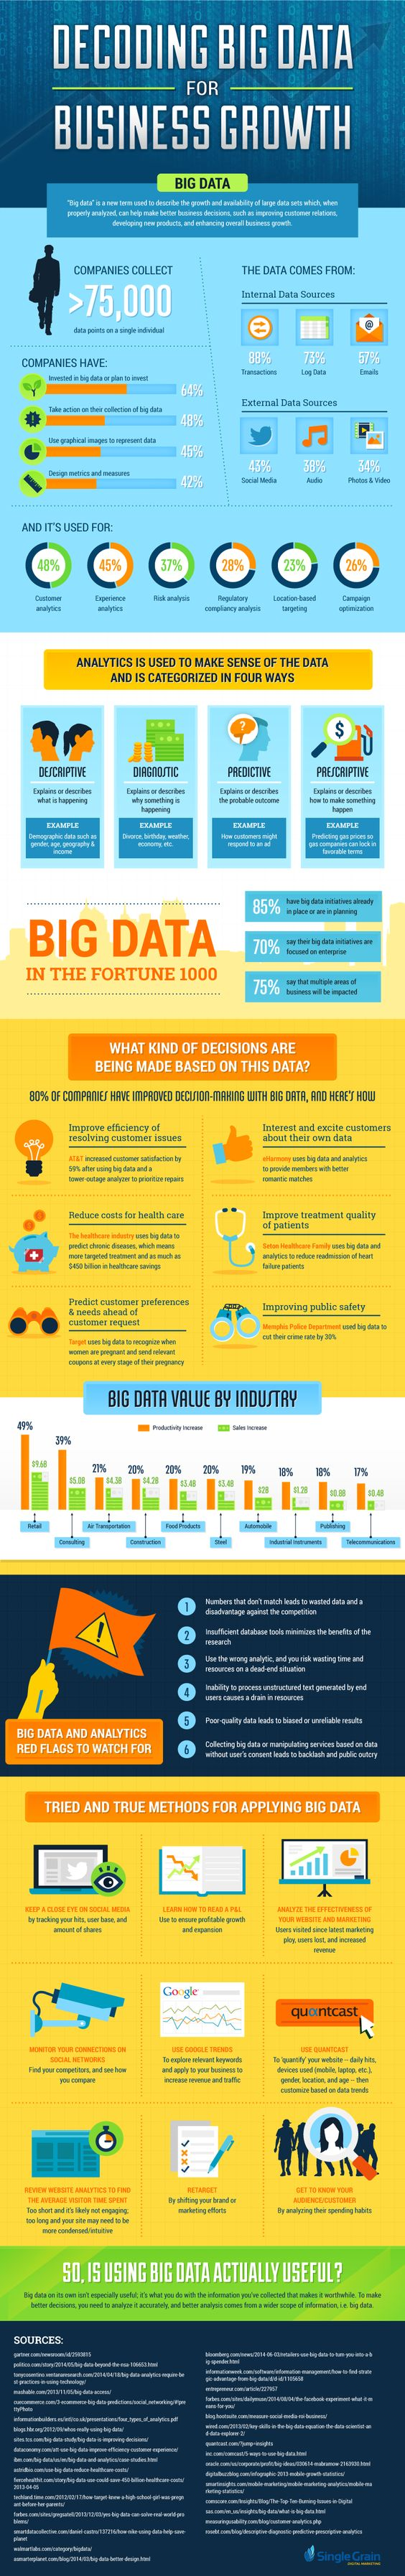 Decoding Big Data for Business Growth - YourDailyTech